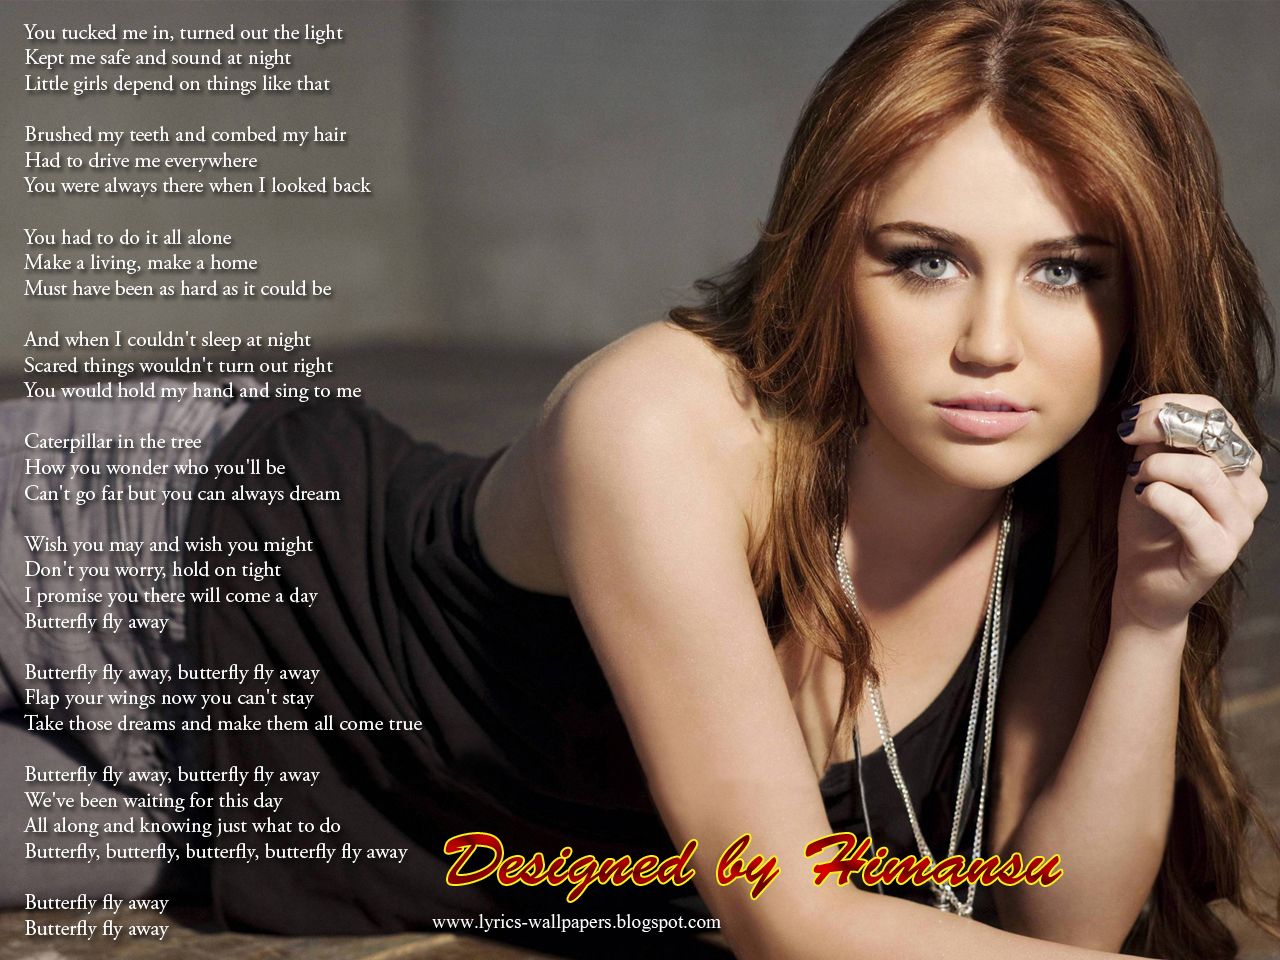 Hannah montana title song lyrics